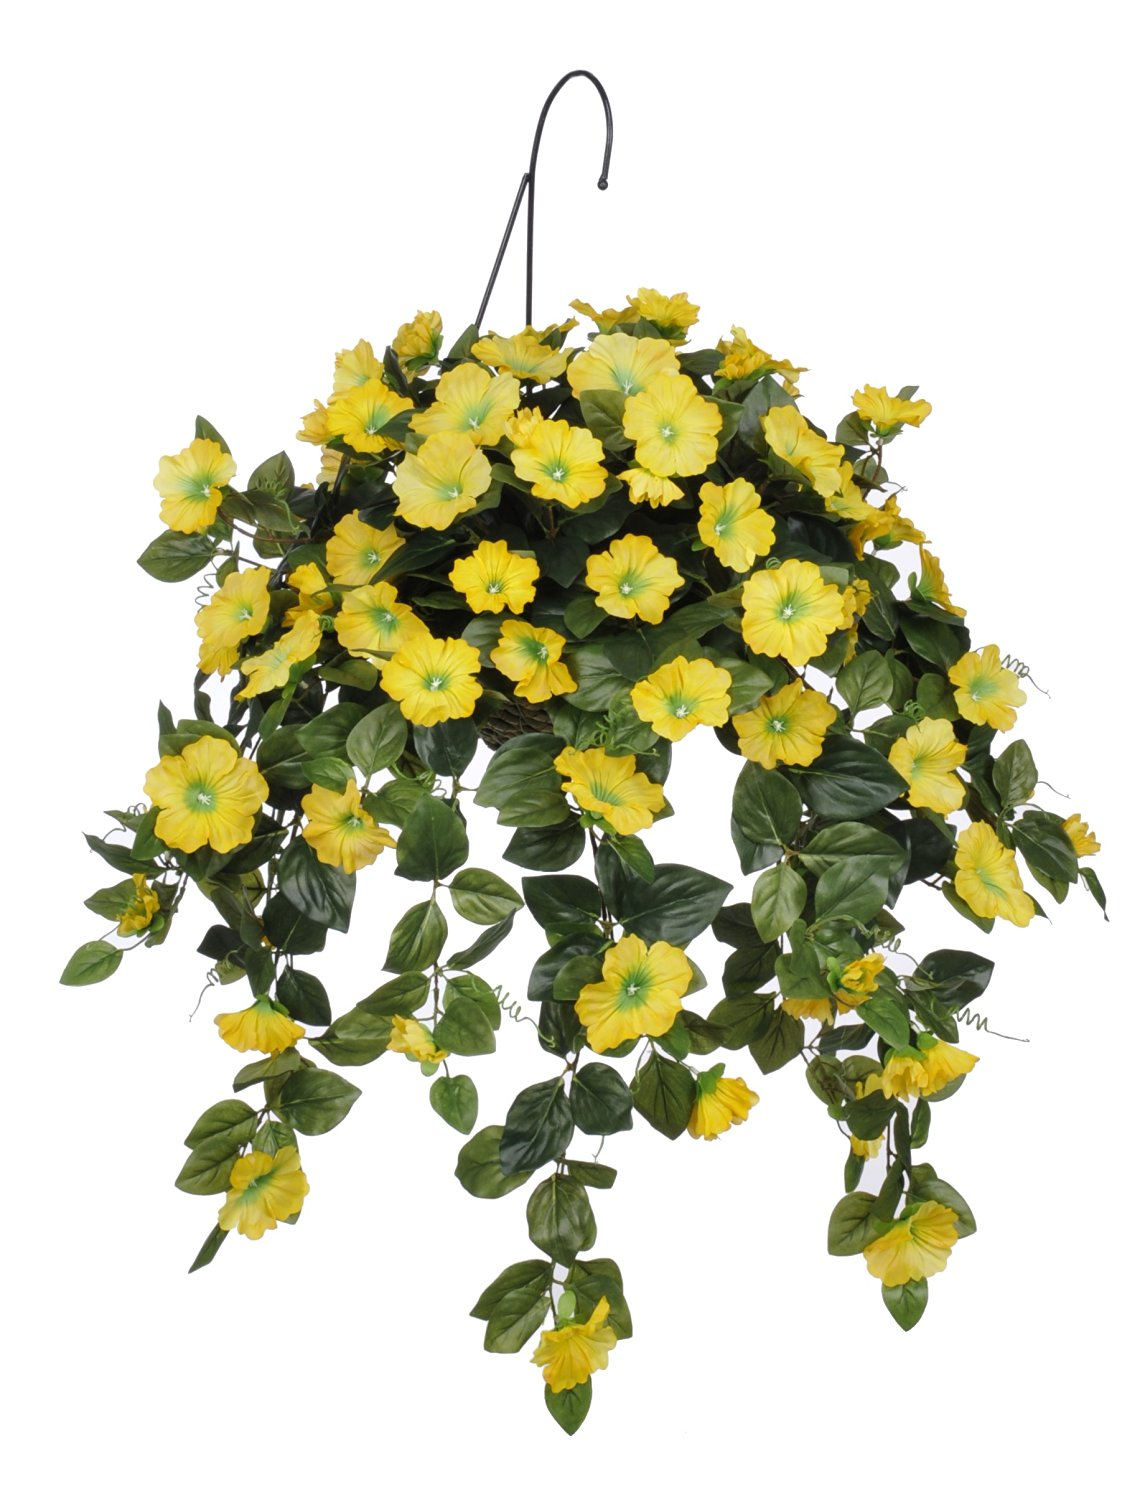 Buy house of silk flowers artificial yellow petunia hanging basket house of silk flowers artificial yellow petunia hanging basket mightylinksfo